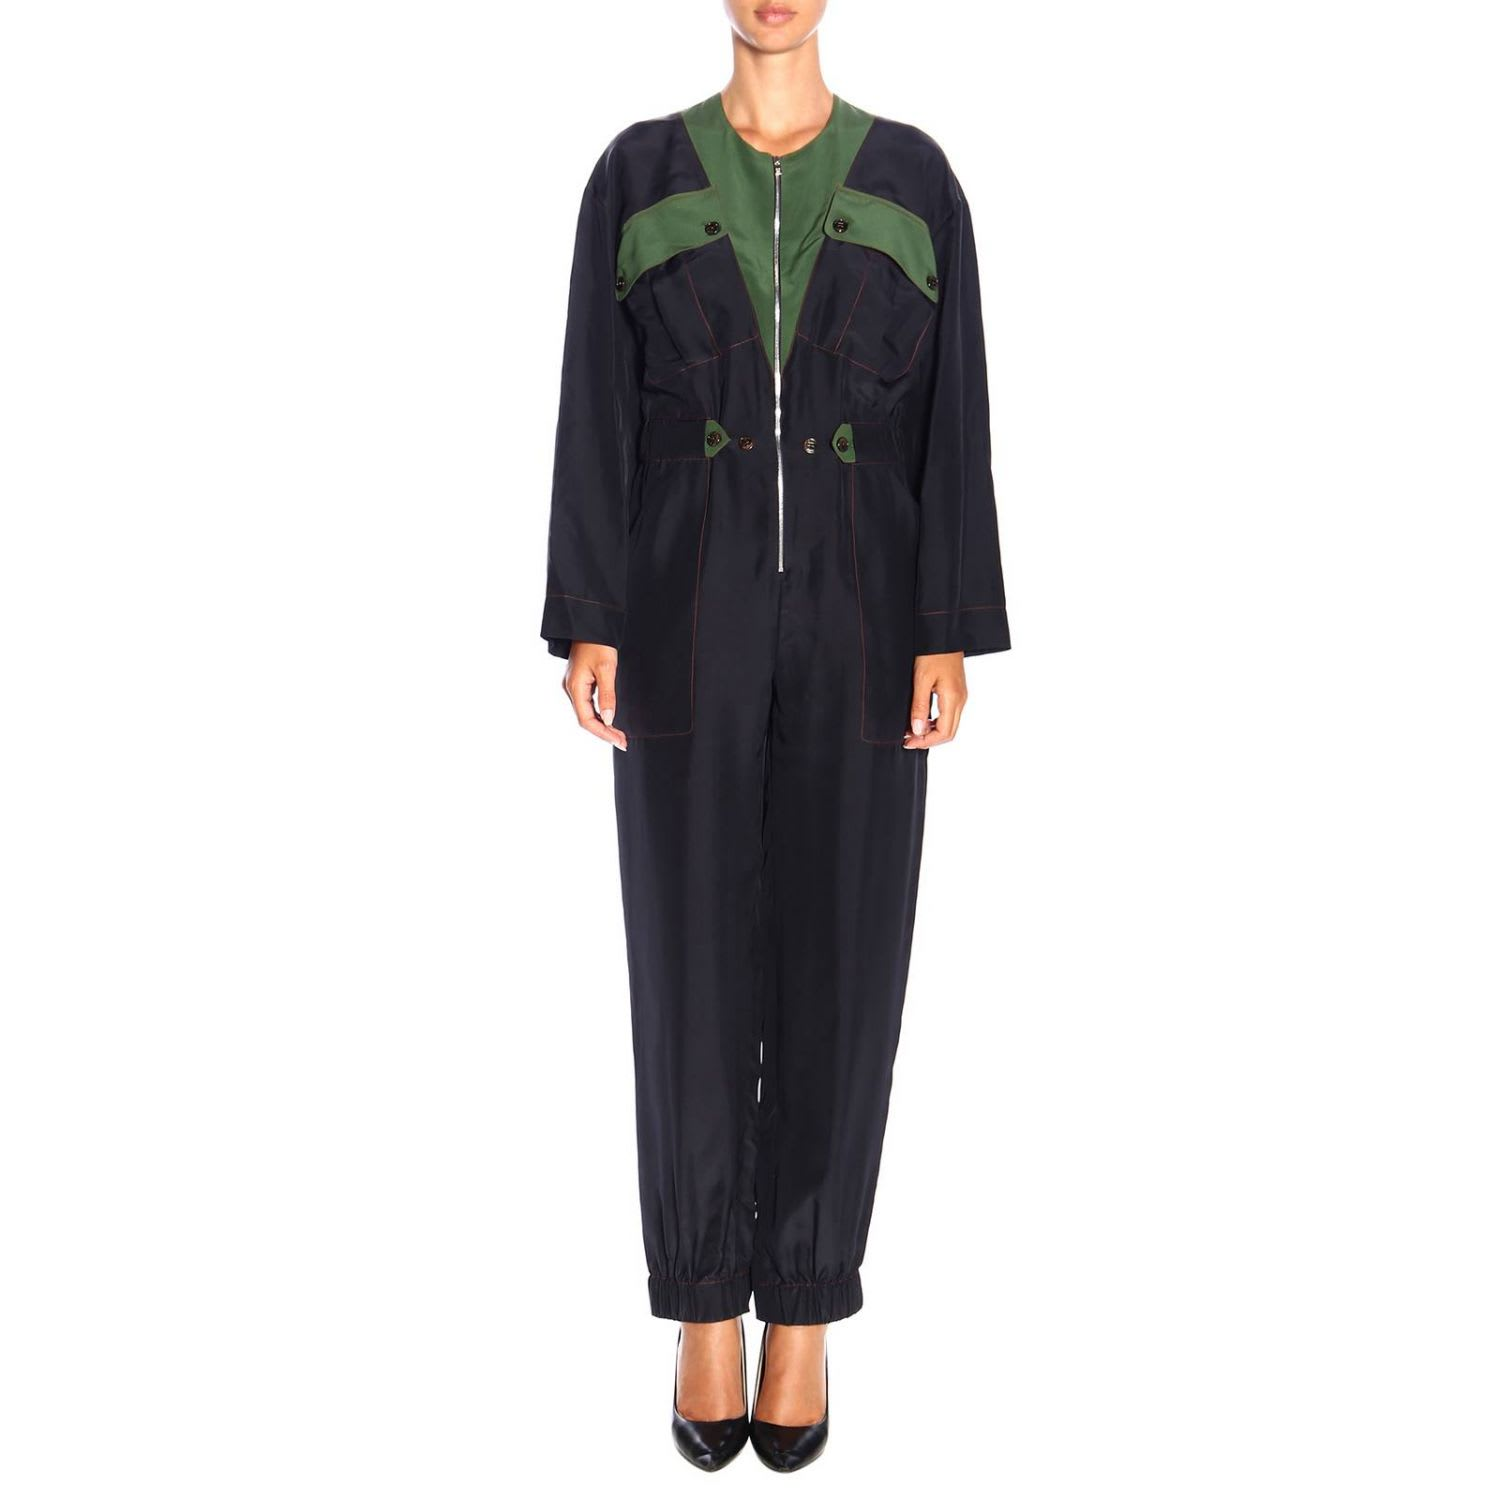 Sonia Rykiel Dress Dress Women Sonia Rykiel